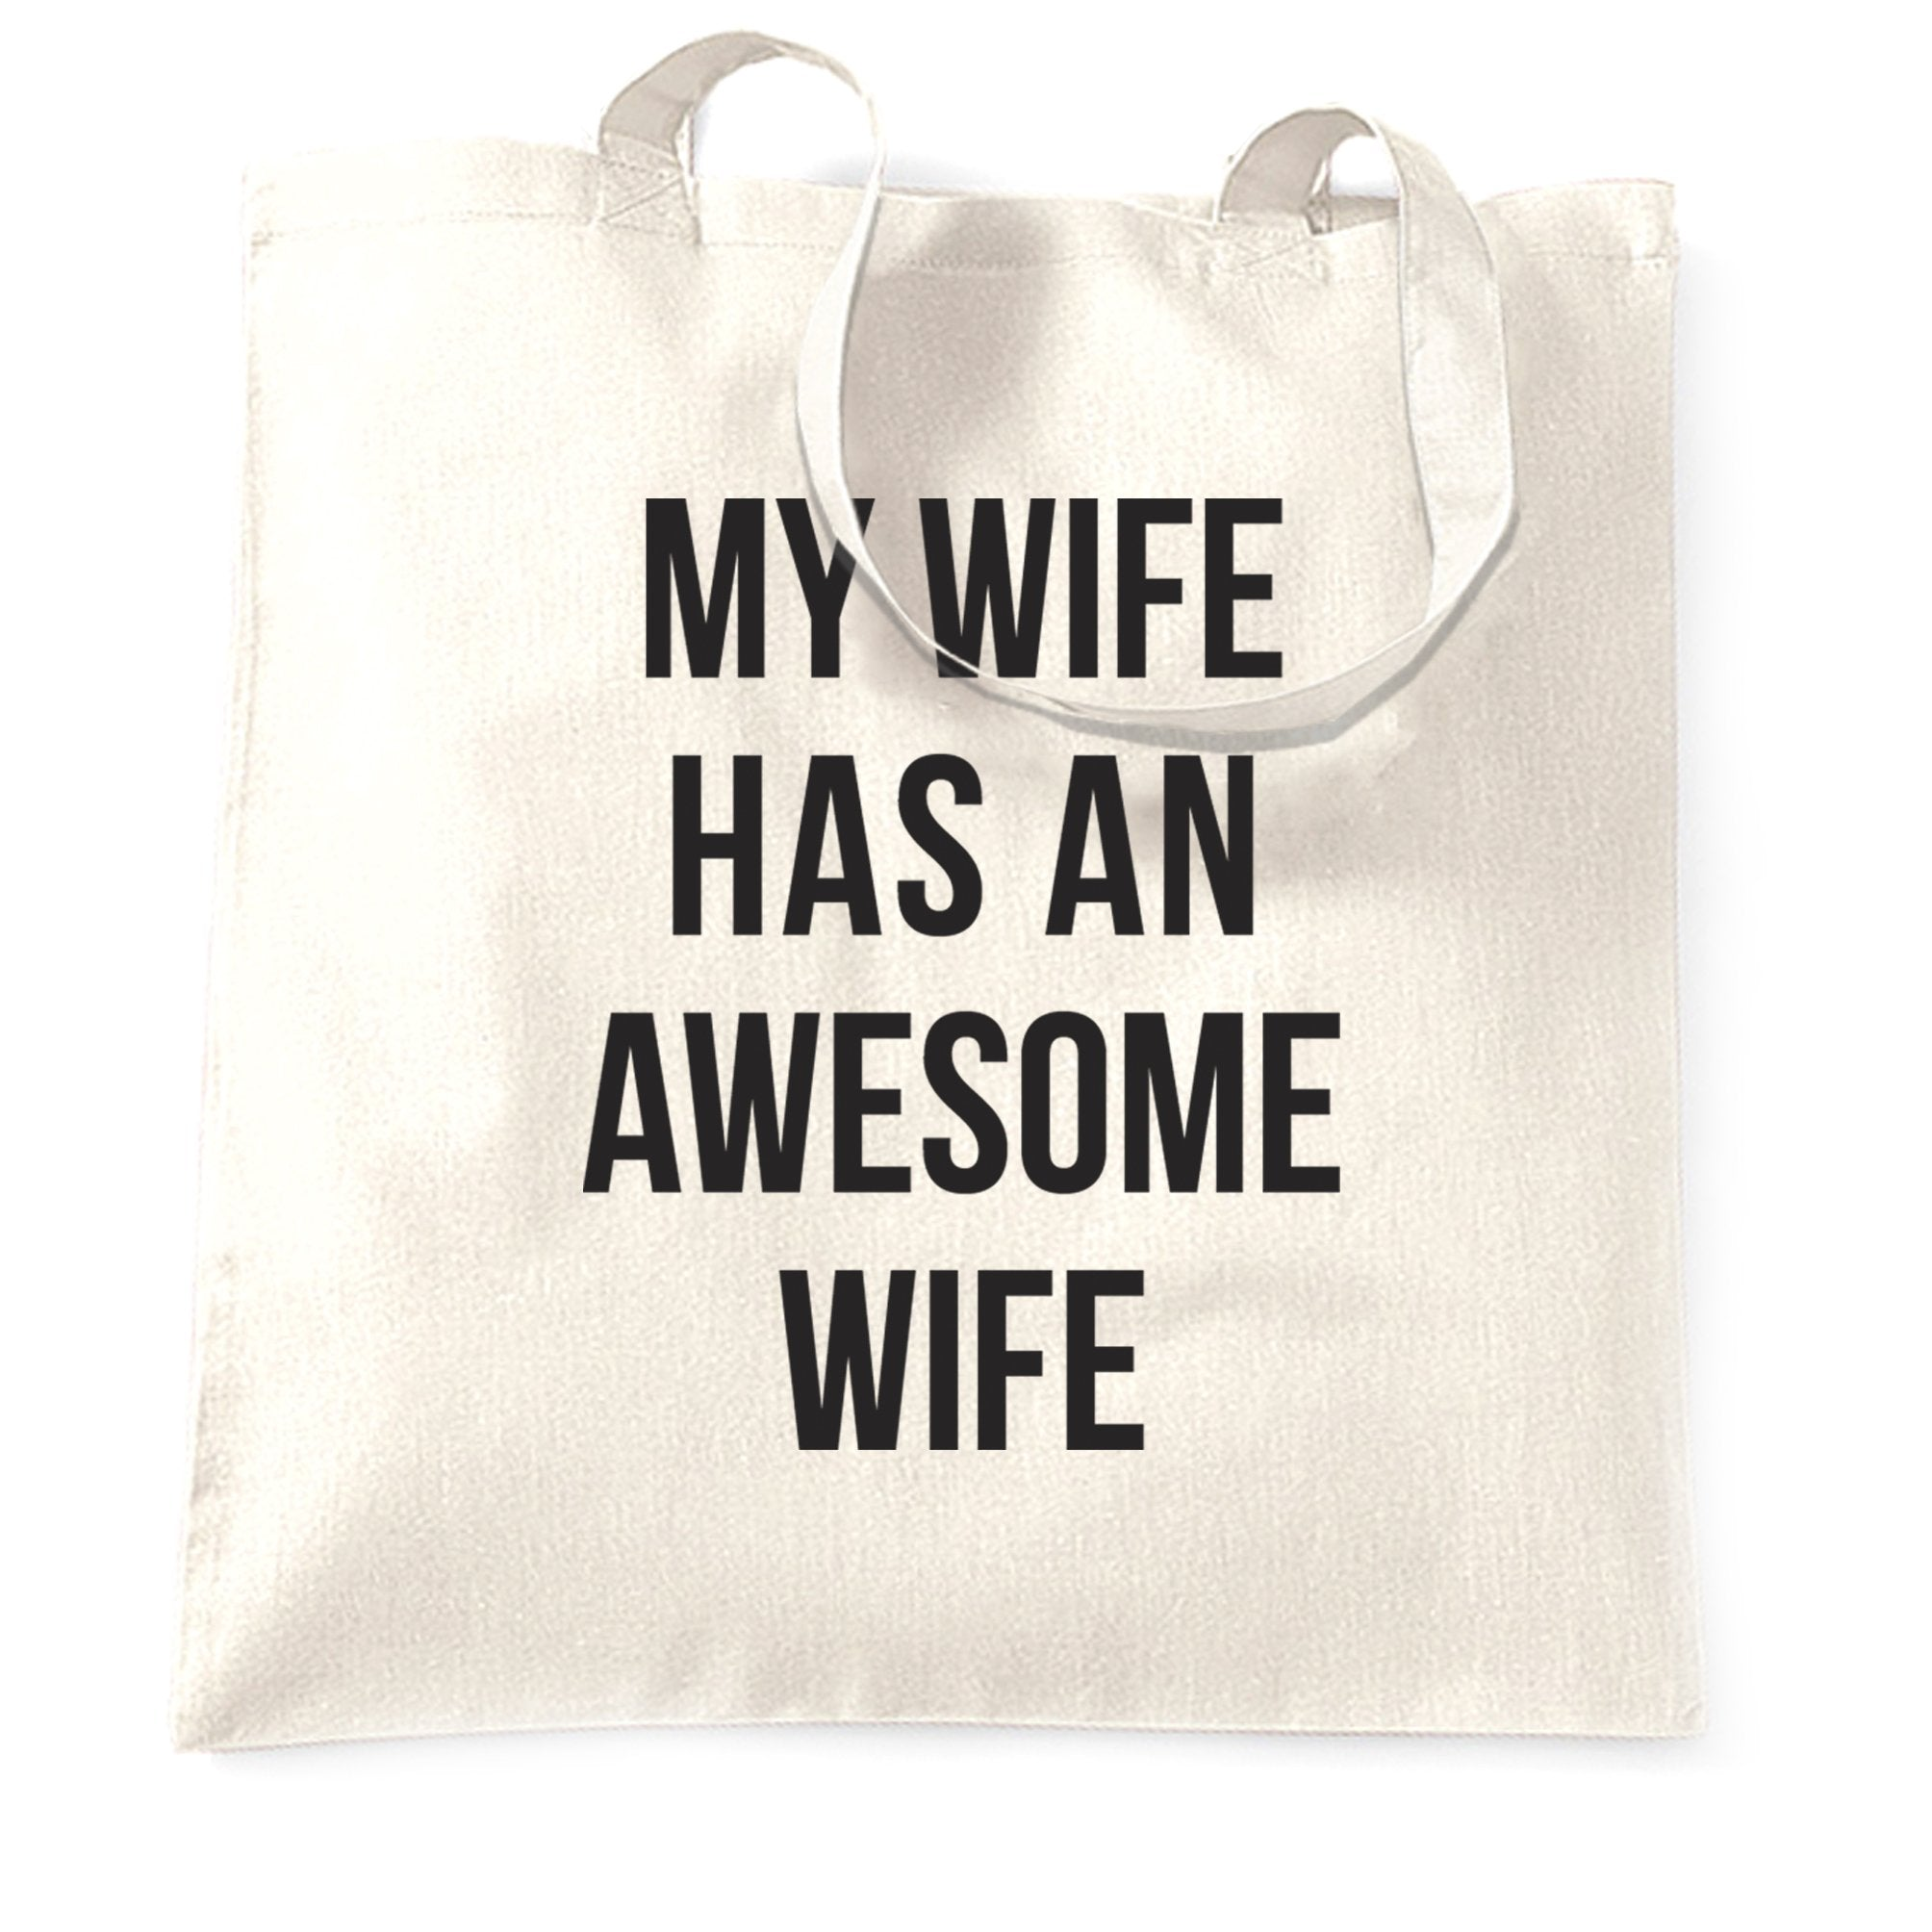 Joke Couples Tote Bag My Wife Has An Awesome Wife